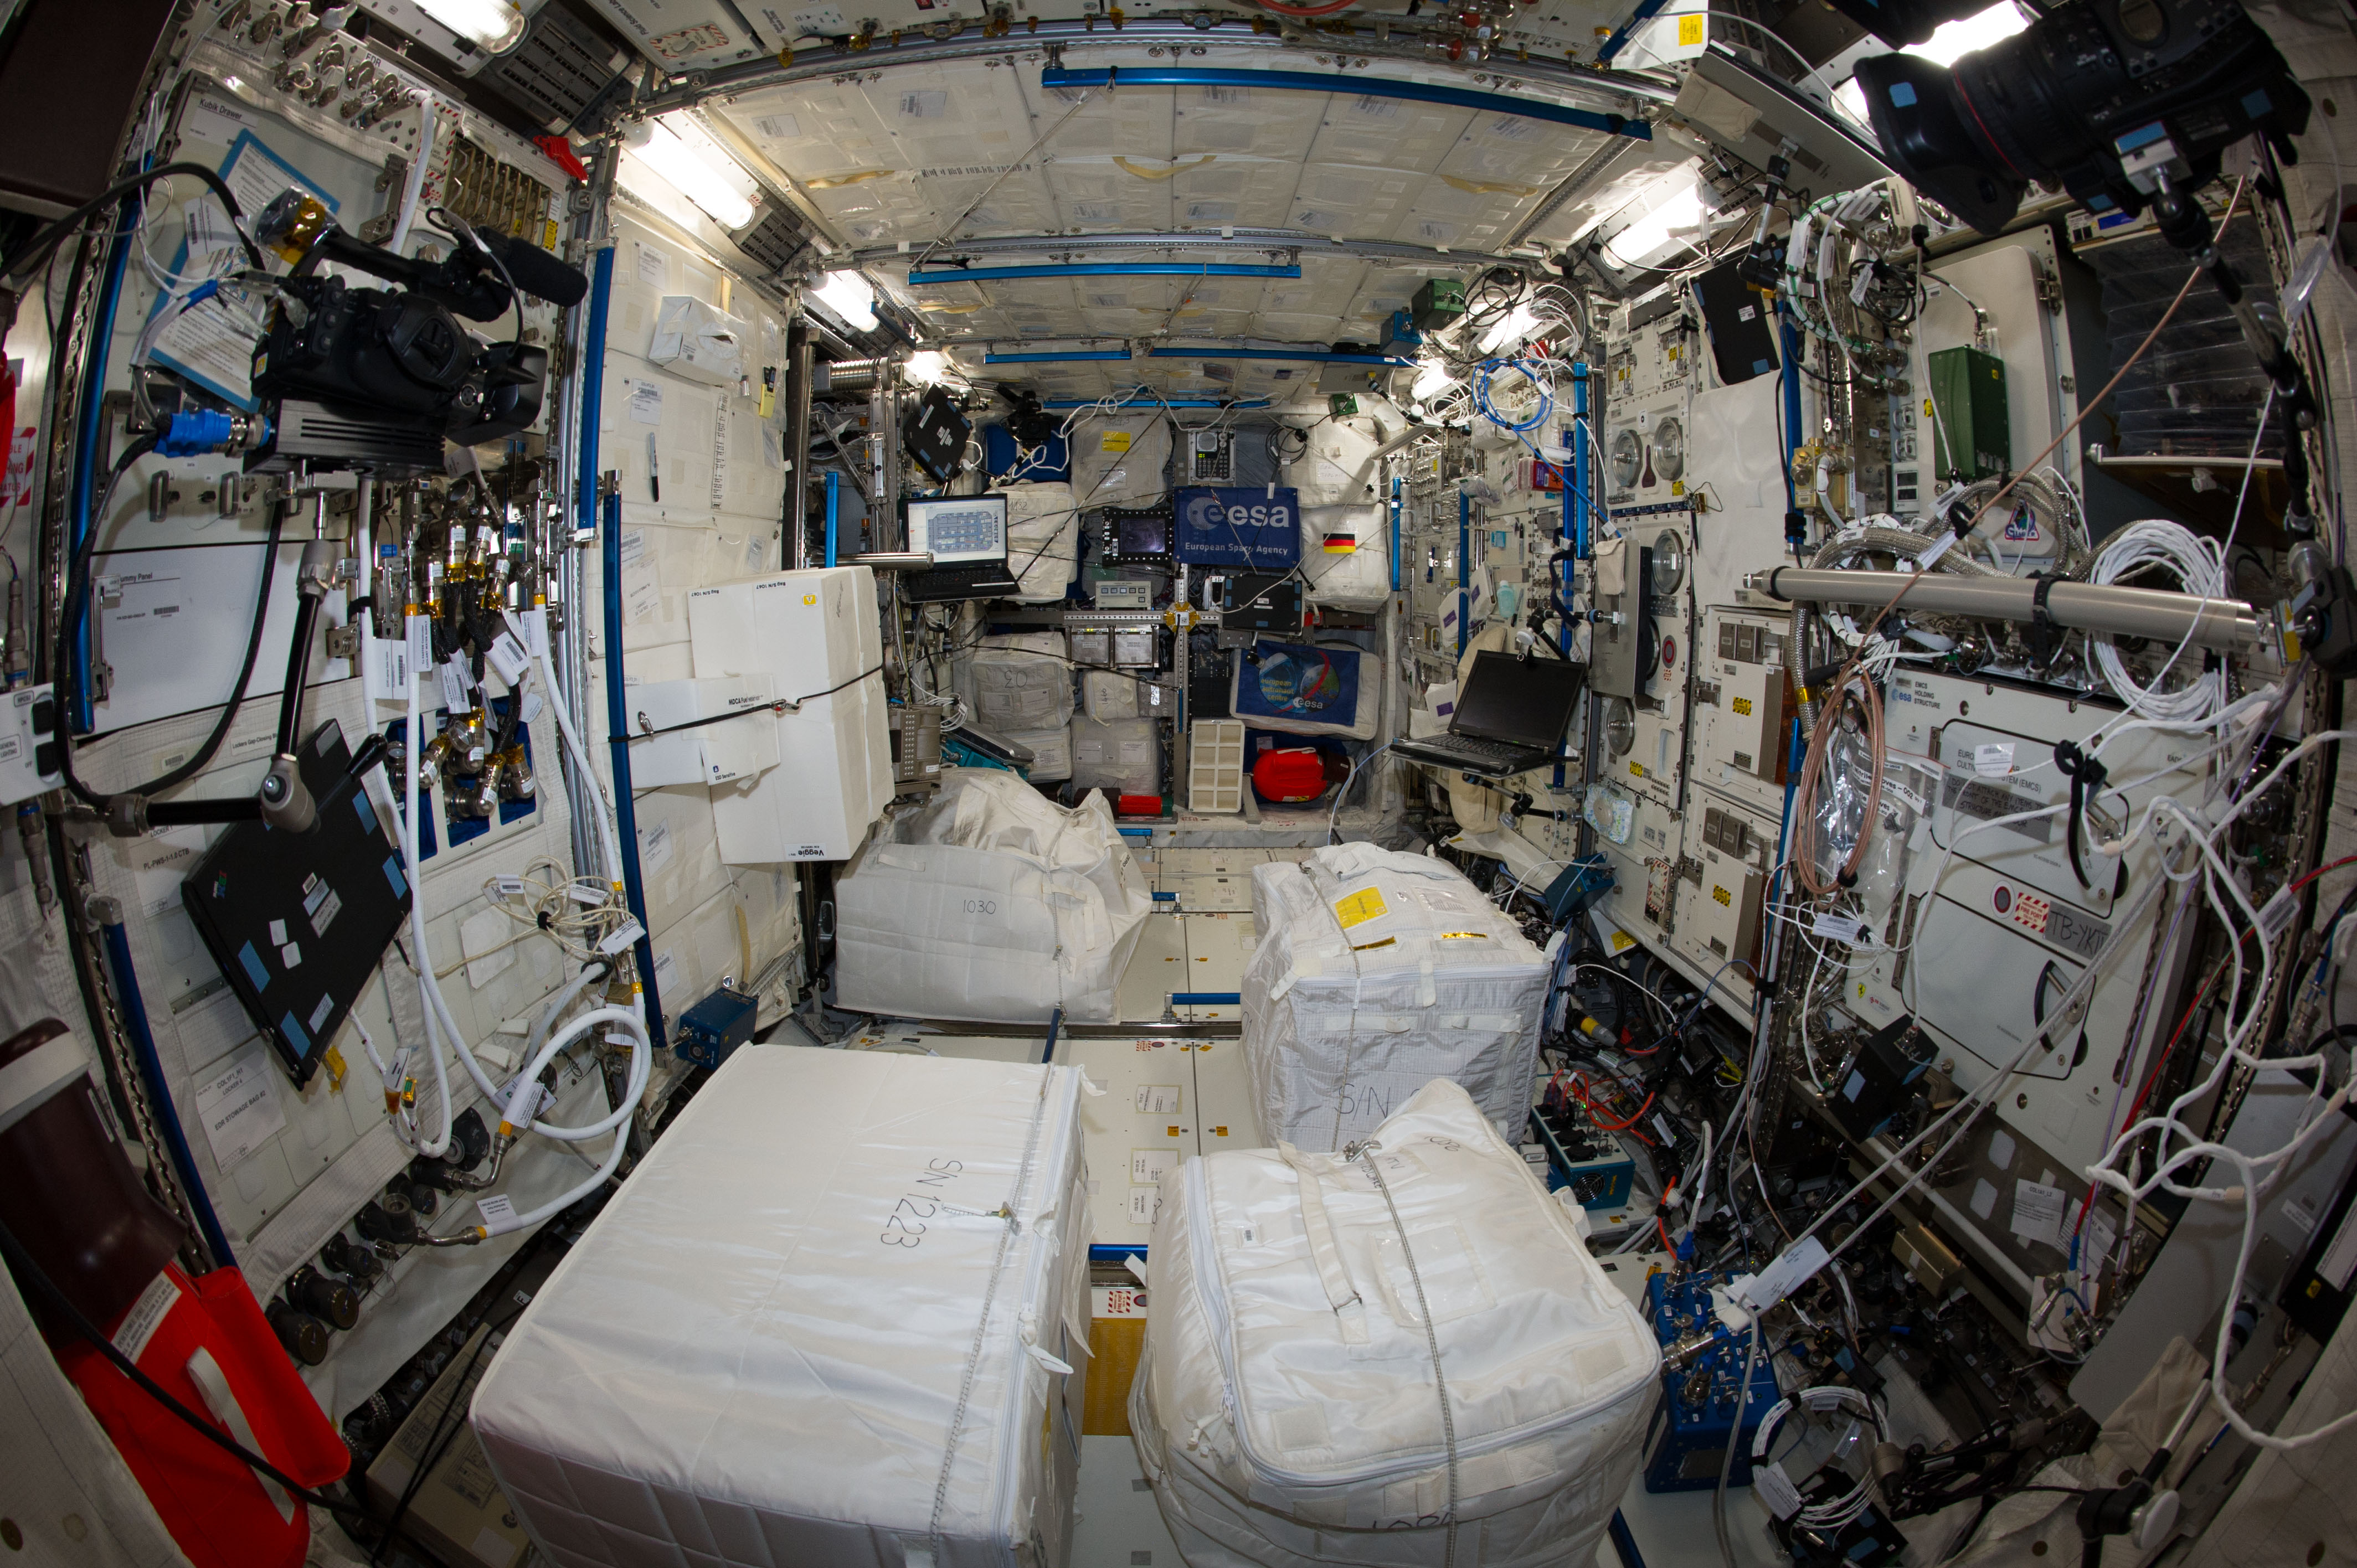 nasa space lab - photo #12